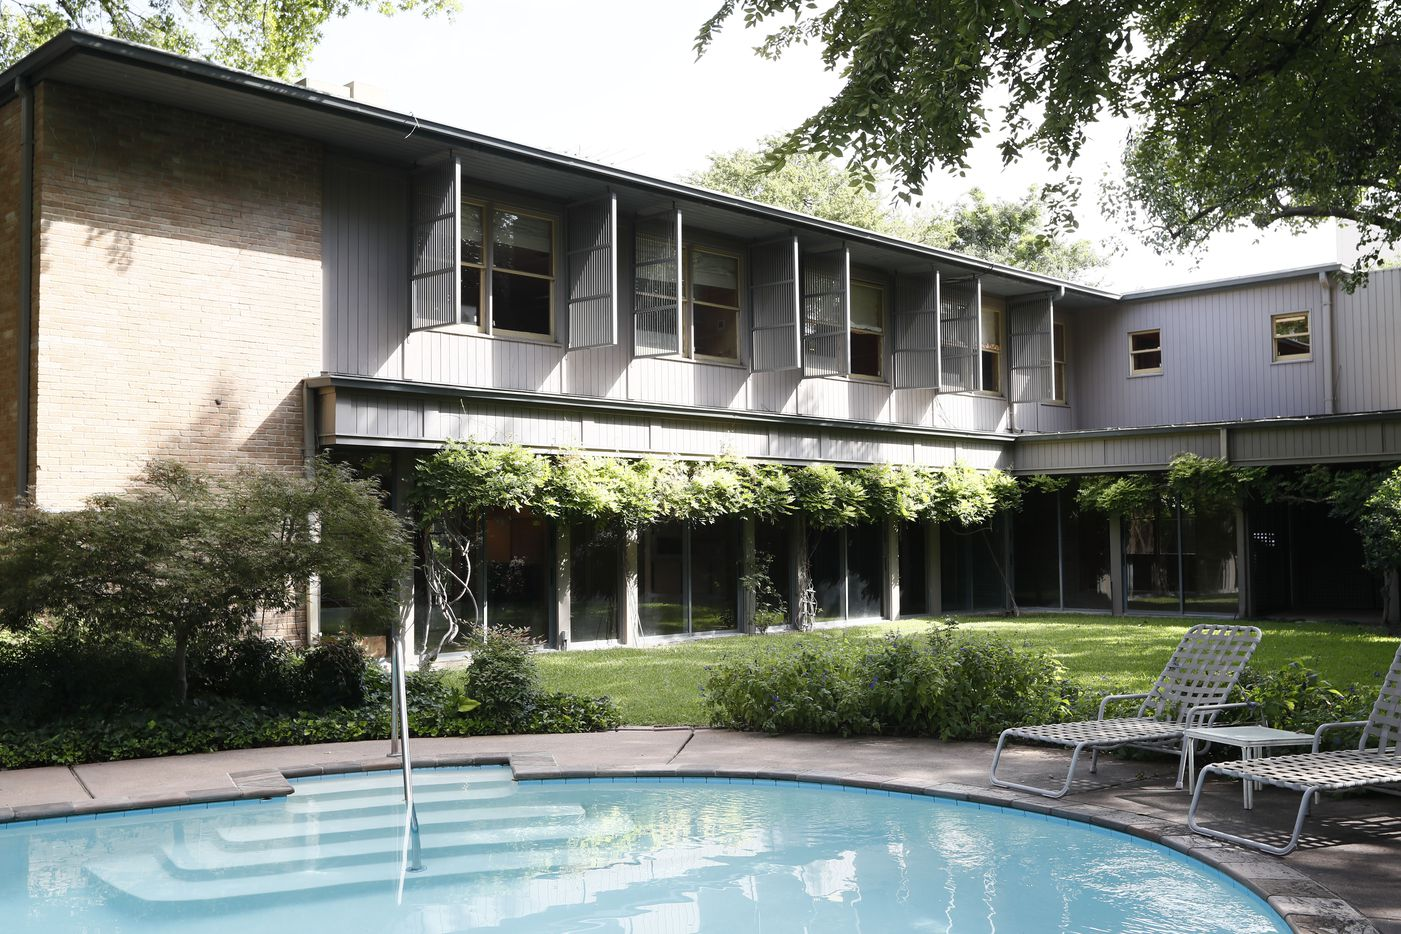 From the back, the Penson house has direct views of Prather Park and Connor Lake, the southernmost lake on Turtle Creek.